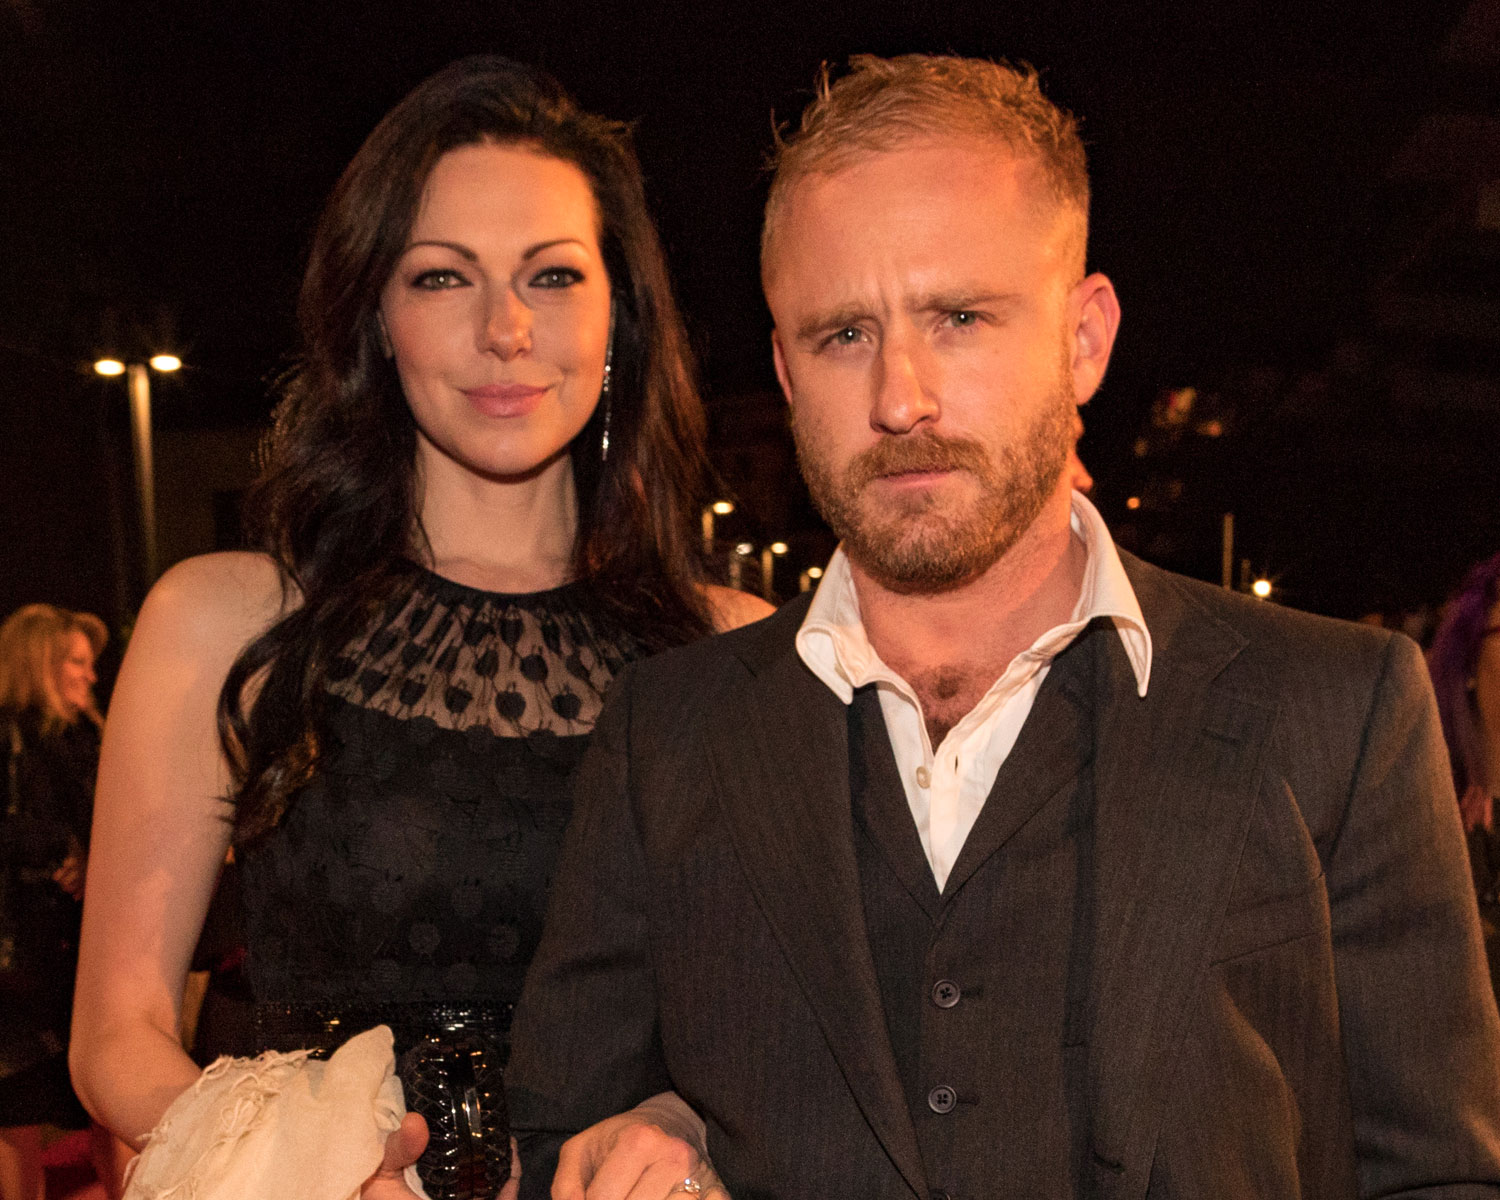 Laura Prepon Expecting A Baby With Ben Foster Wants A Really Small Wedding